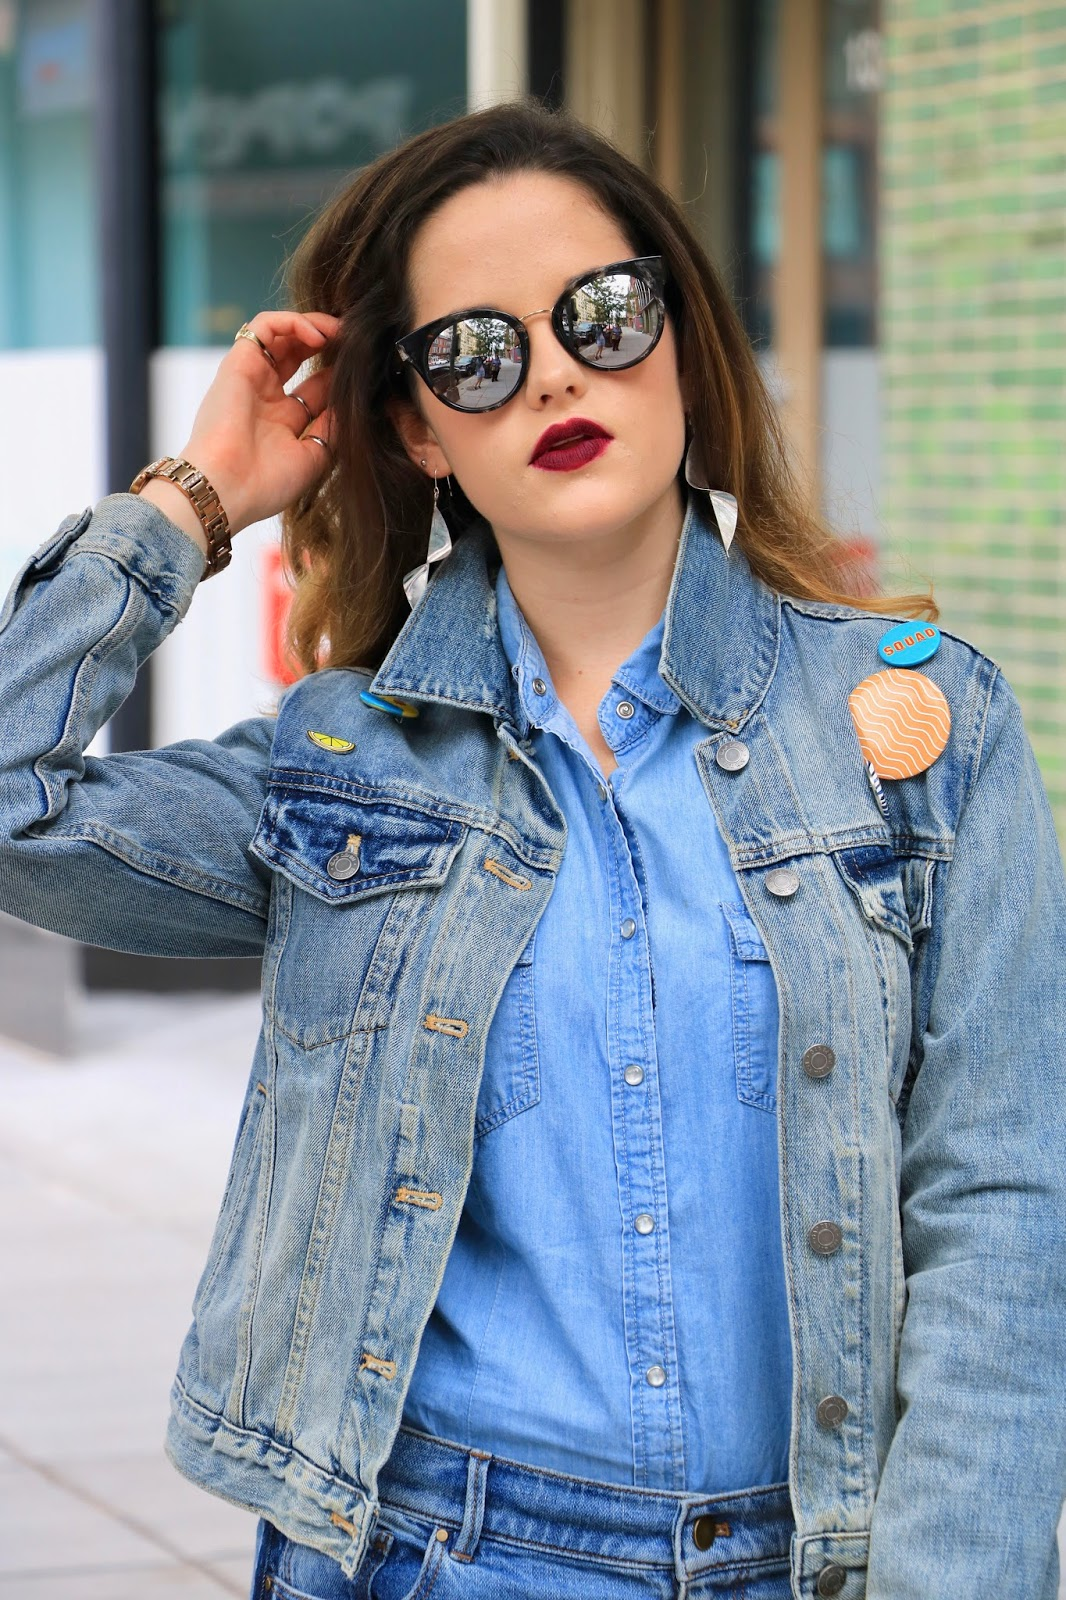 Nyc fashion blogger Kathleen Harper wearing a jean outfit